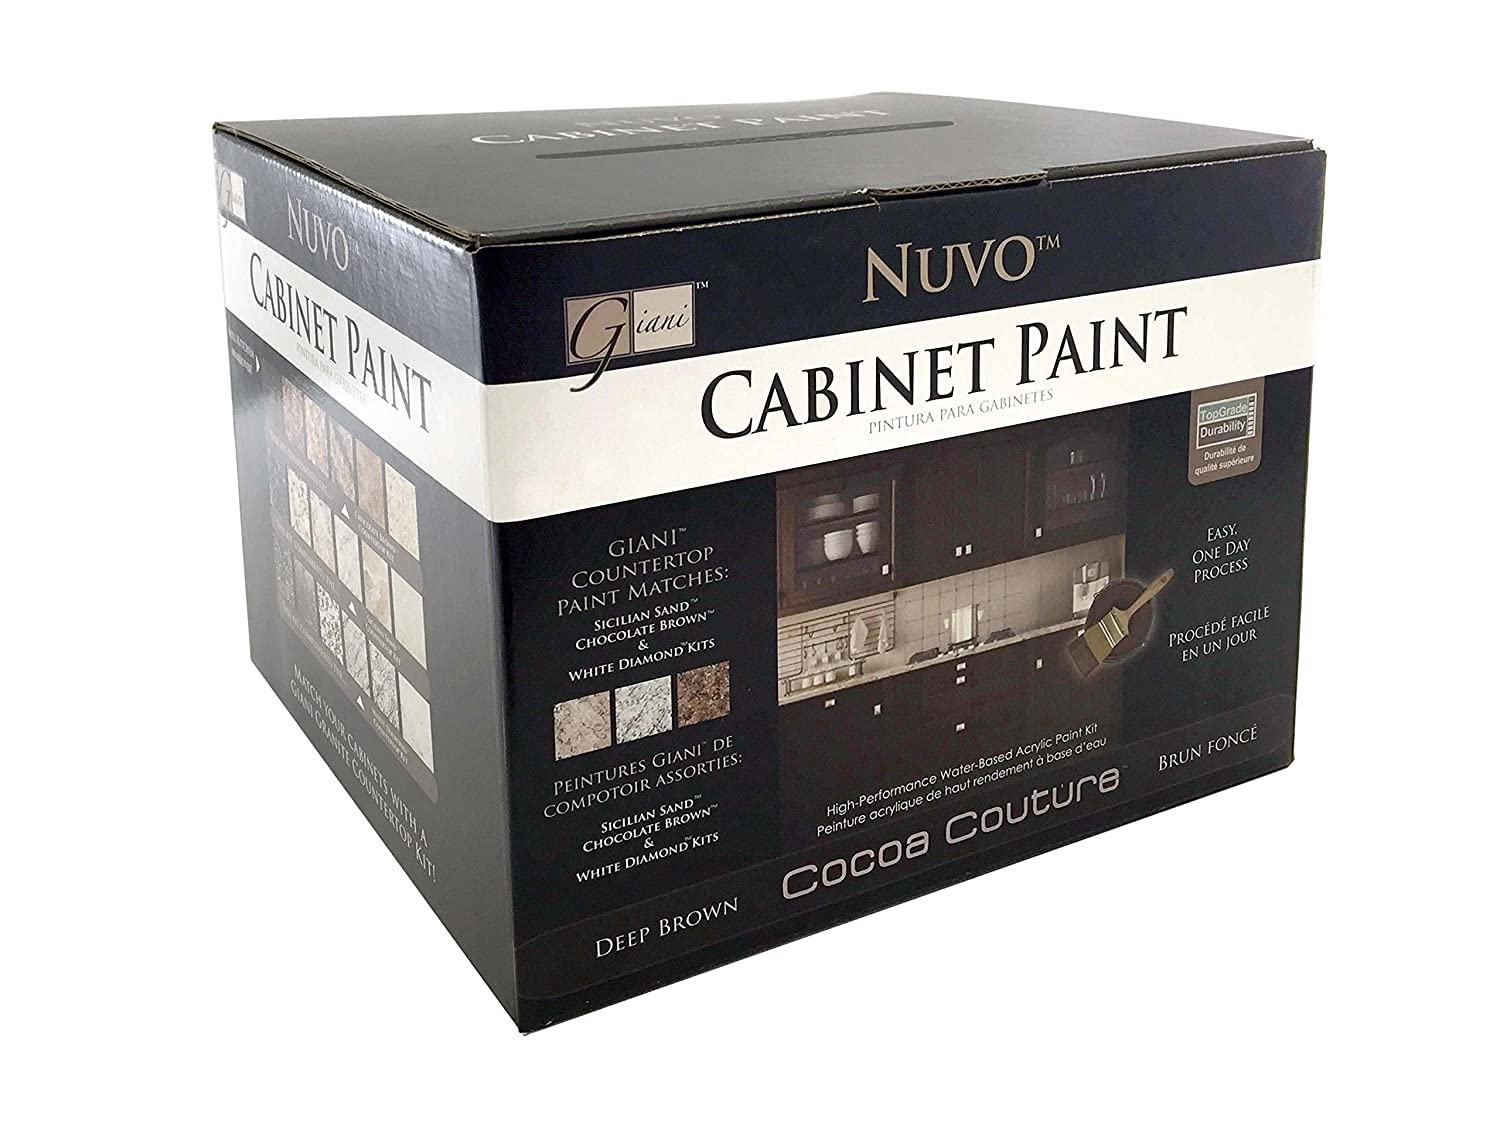 Nuvo Cabinet Paint Reviews Amazoncom Nuvo Cocoa Couture Cabinet Paint Kit Home Improvement